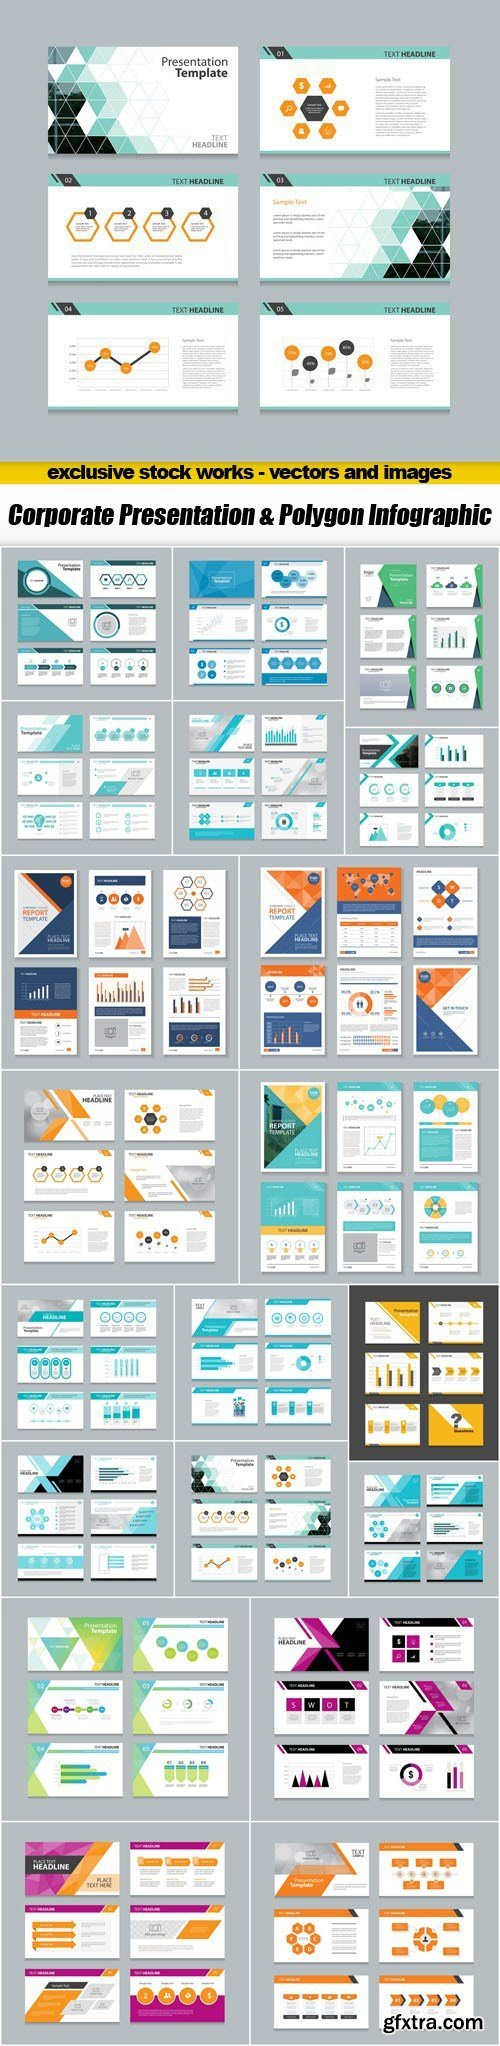 Сorporate Presentation & Polygon Infographic - 20xEPS